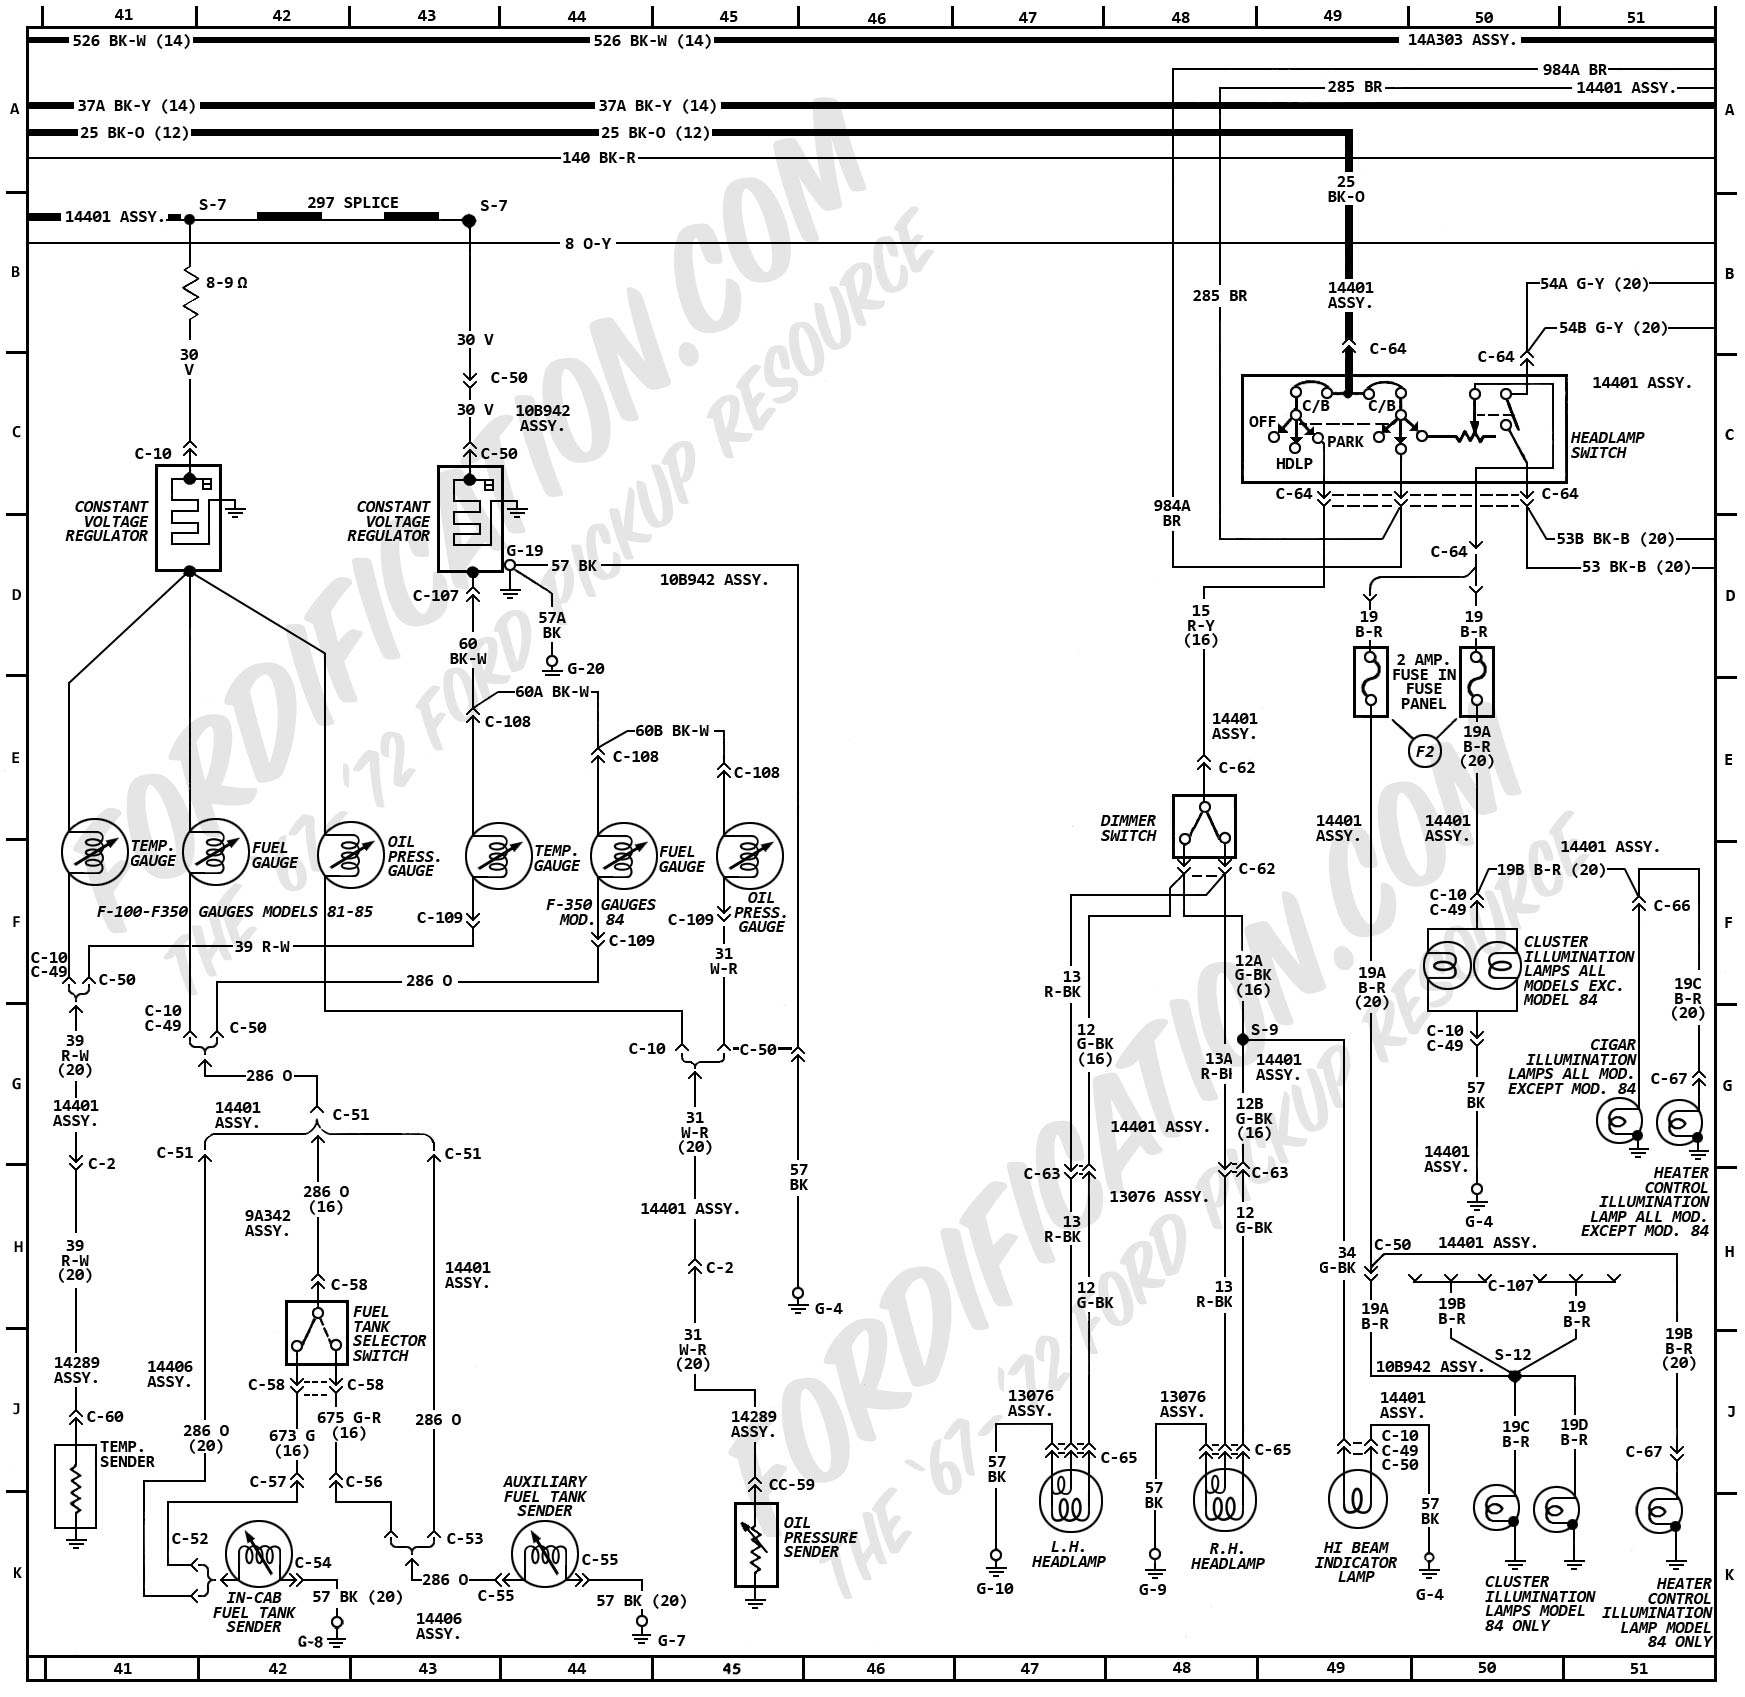 [DIAGRAM_5NL]  DIAGRAM] 1987 Ford L8000 Wiring Diagram FULL Version HD Quality Wiring  Diagram - WIRINGCONNECTORS.LEXANESIRAC.FR | Ford L9000 Wiring Diagram Brakelights |  | wiringconnectors.lexanesirac.fr